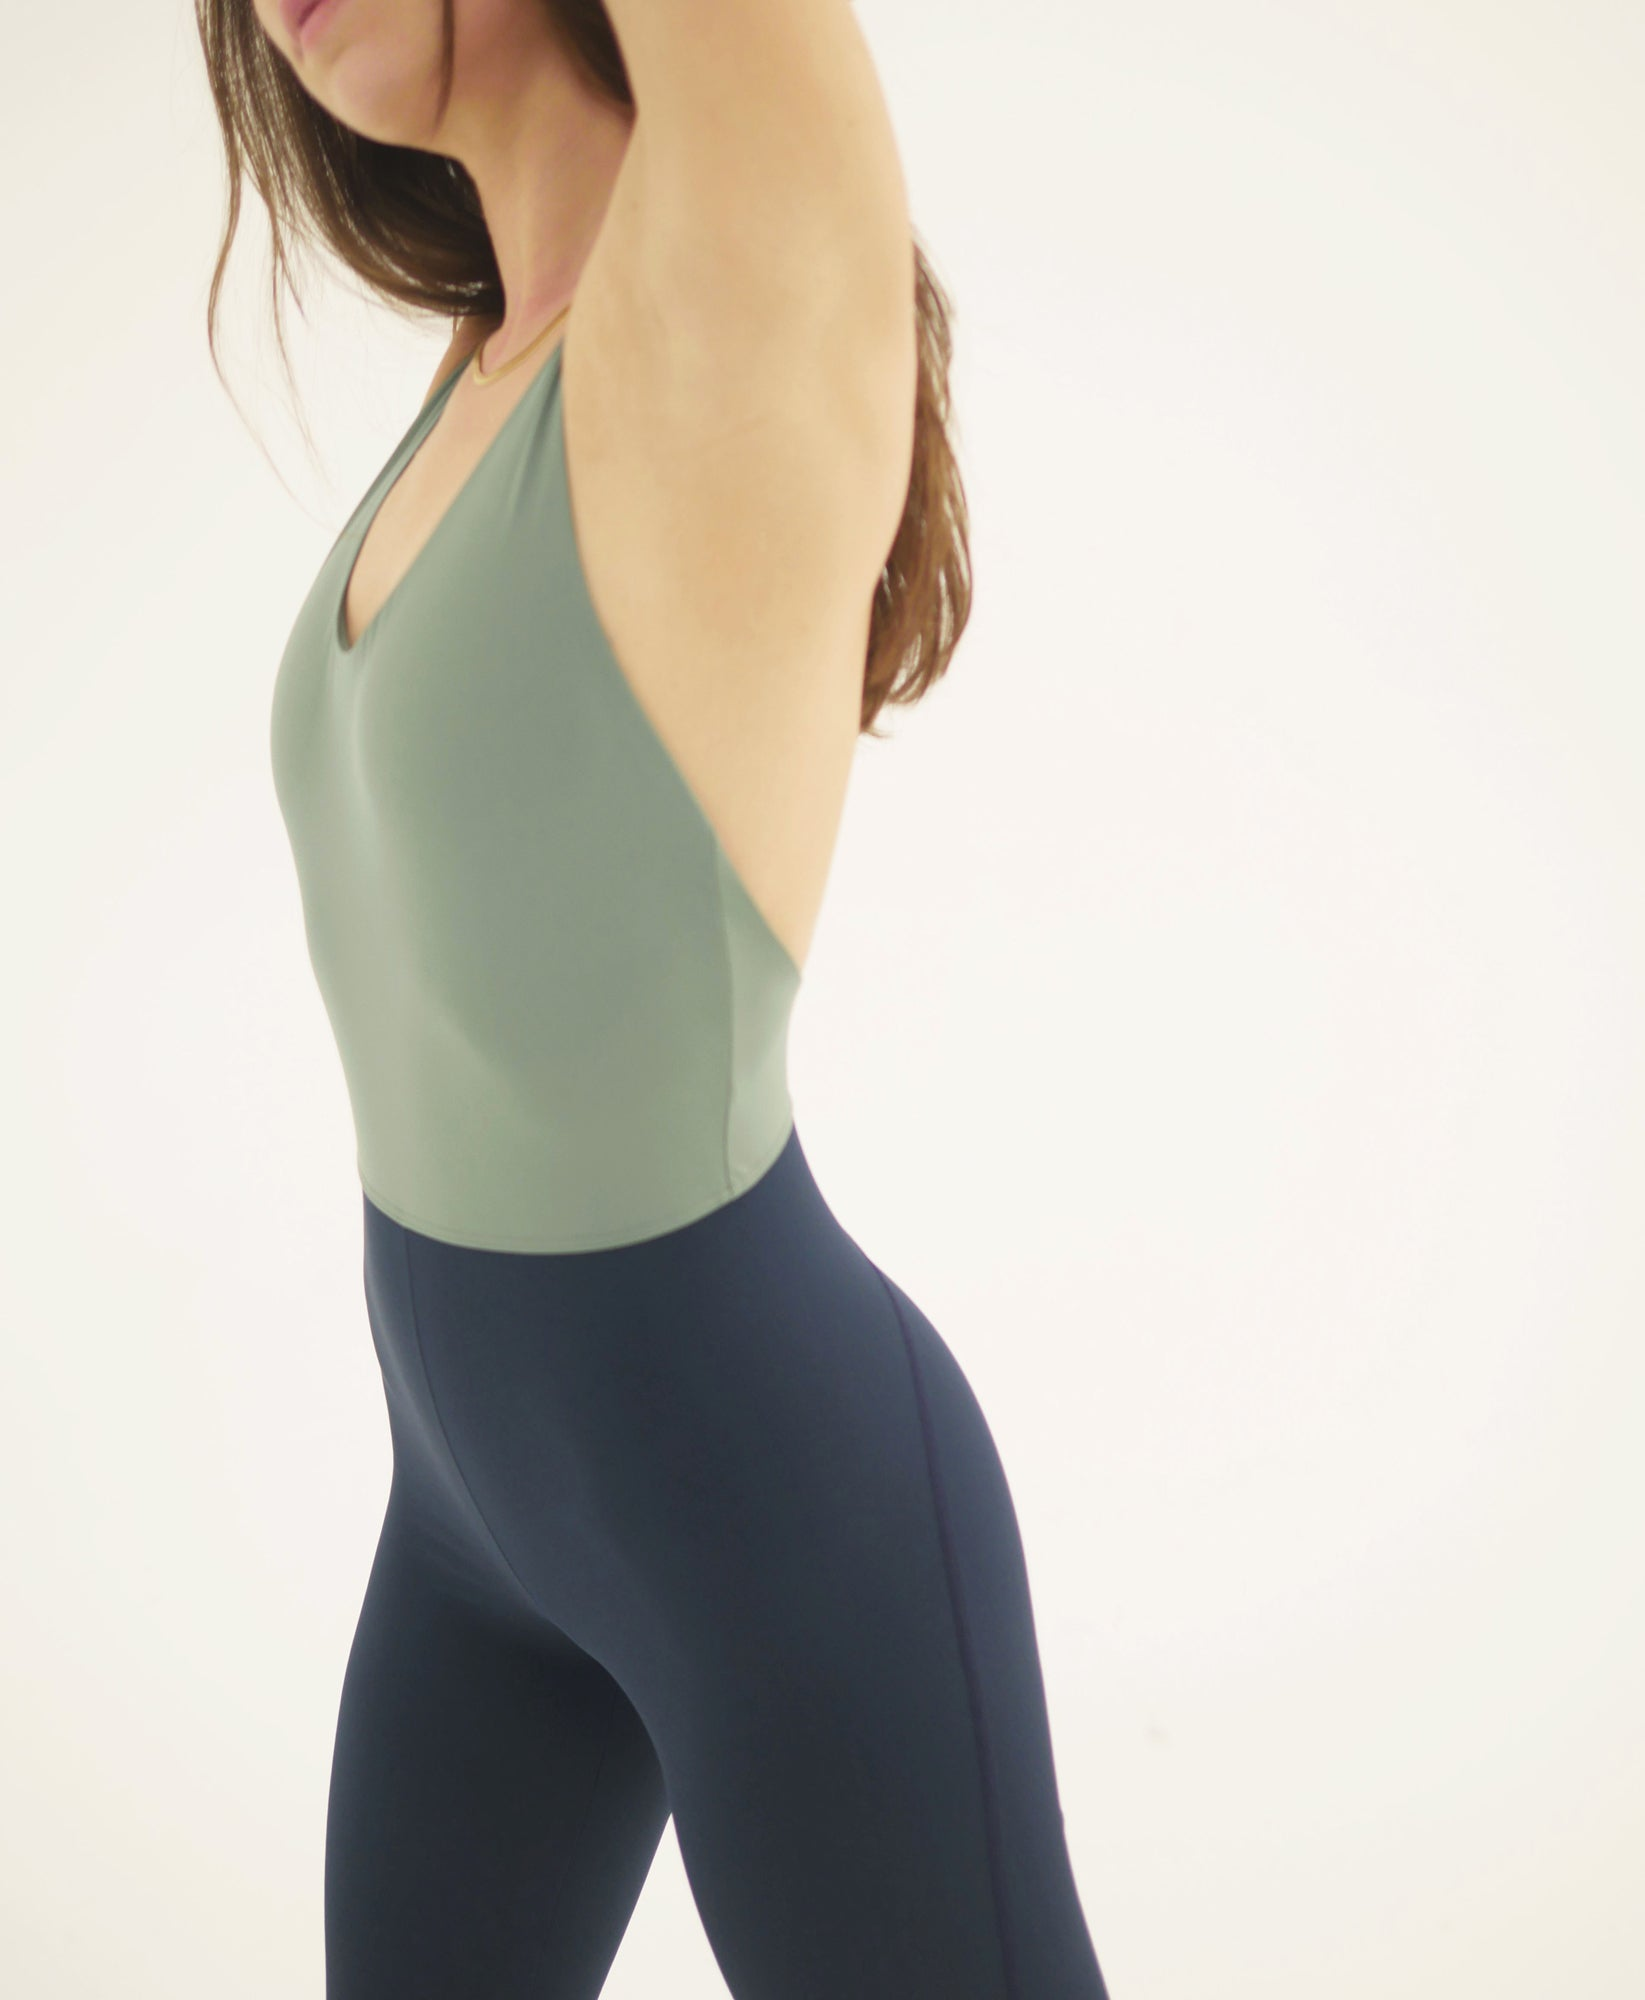 Wear One's At Liberty Unitard in Sage and Navy on Model Side Detail View